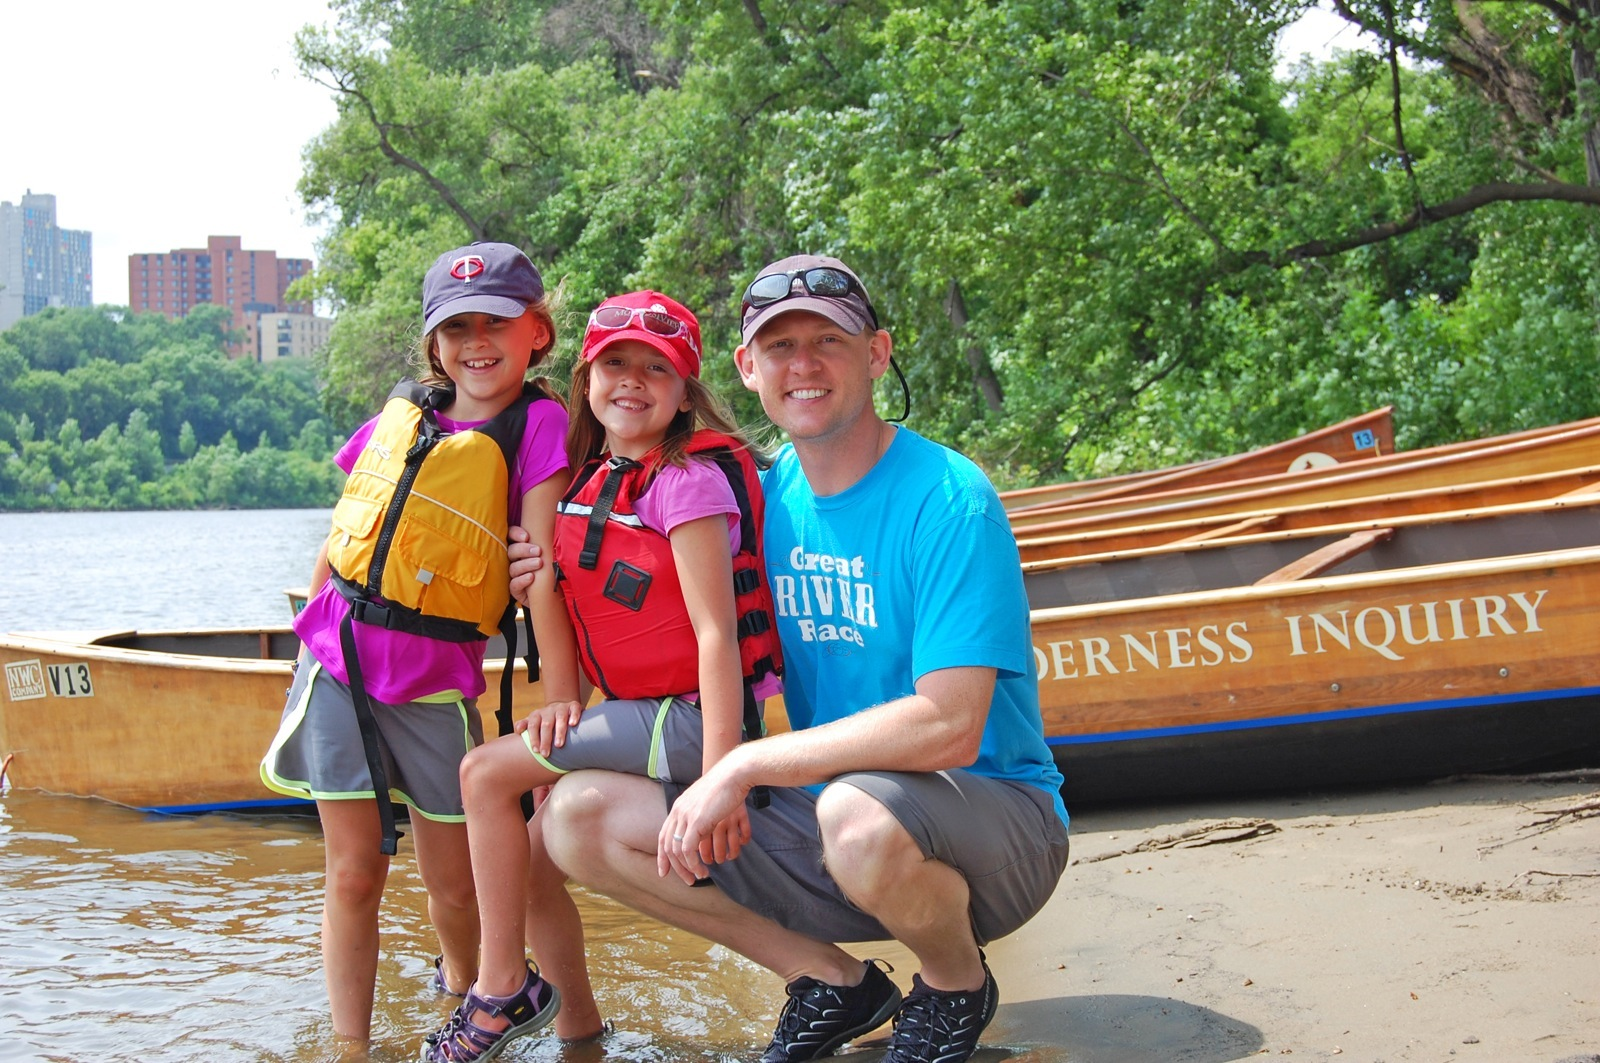 A smiling father and two daughters pose on the beach in front of a group of Voyageur canoes.